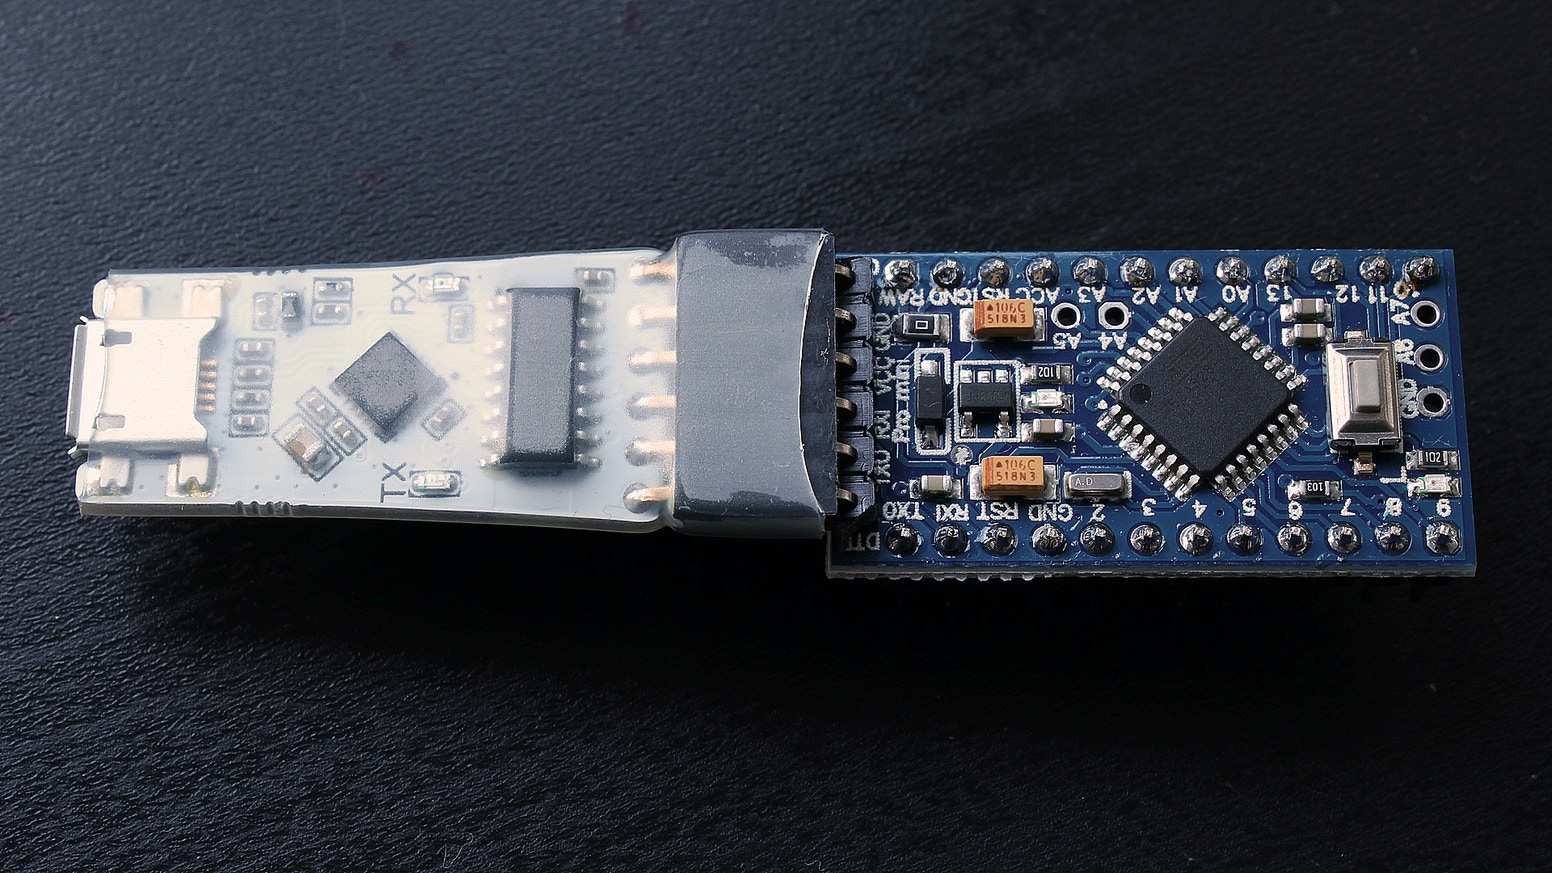 Isolated Usb To Uart Converter For Arduino Pro Mini By Simone Connecting Power Source Arduino39s 5v Pin Electrical Engineering Inexpensive Port Saver Simple Tiny With Digital Isolator Working